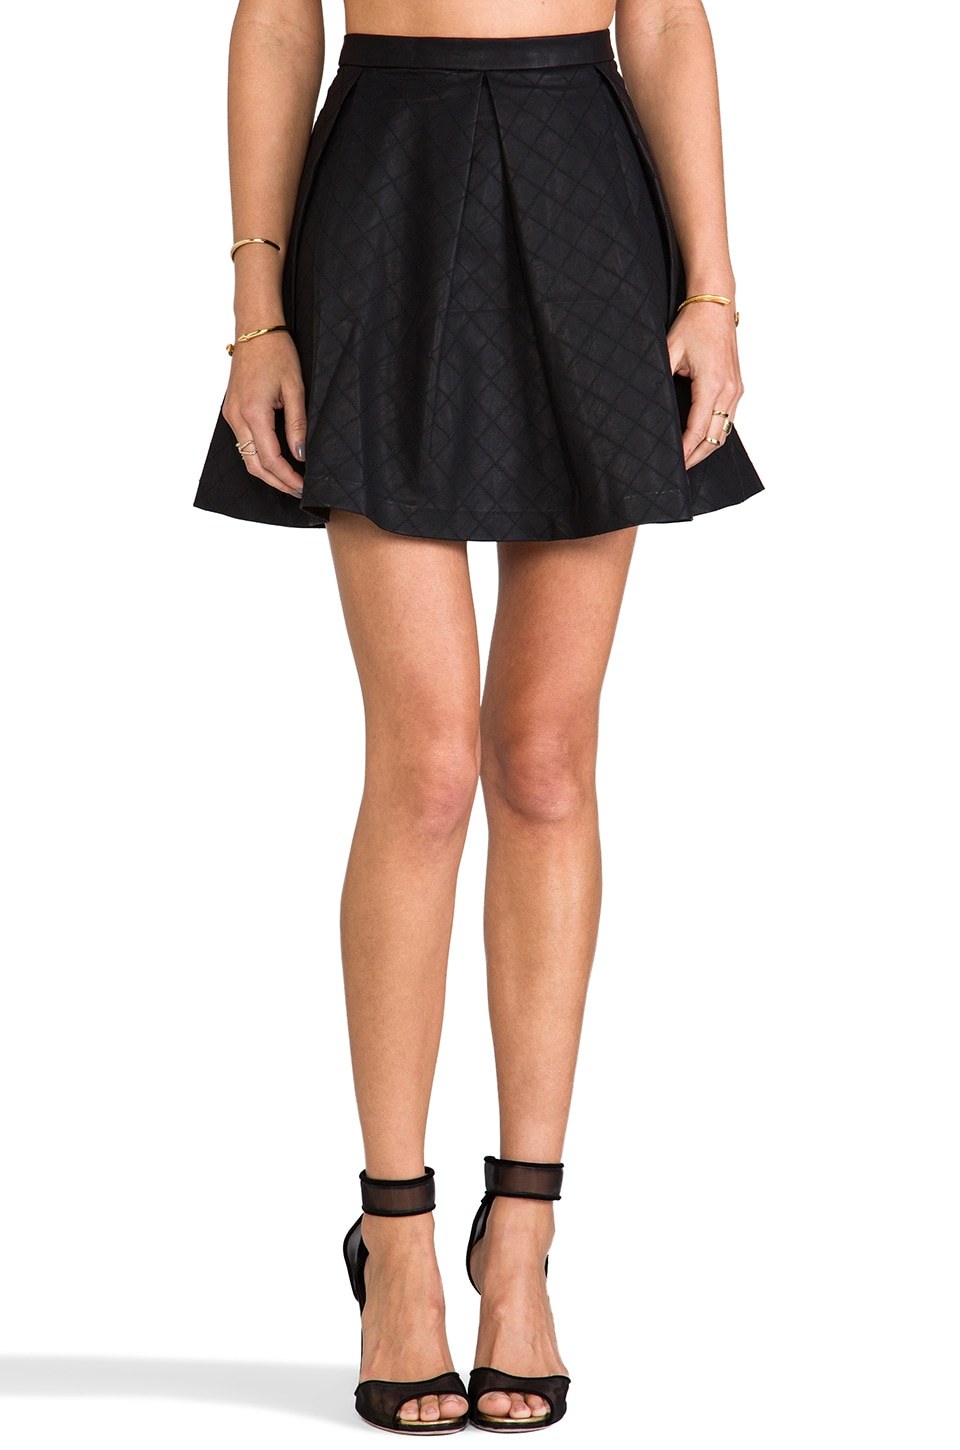 Dolce Vita Marin Faux Leather Skirt in Black